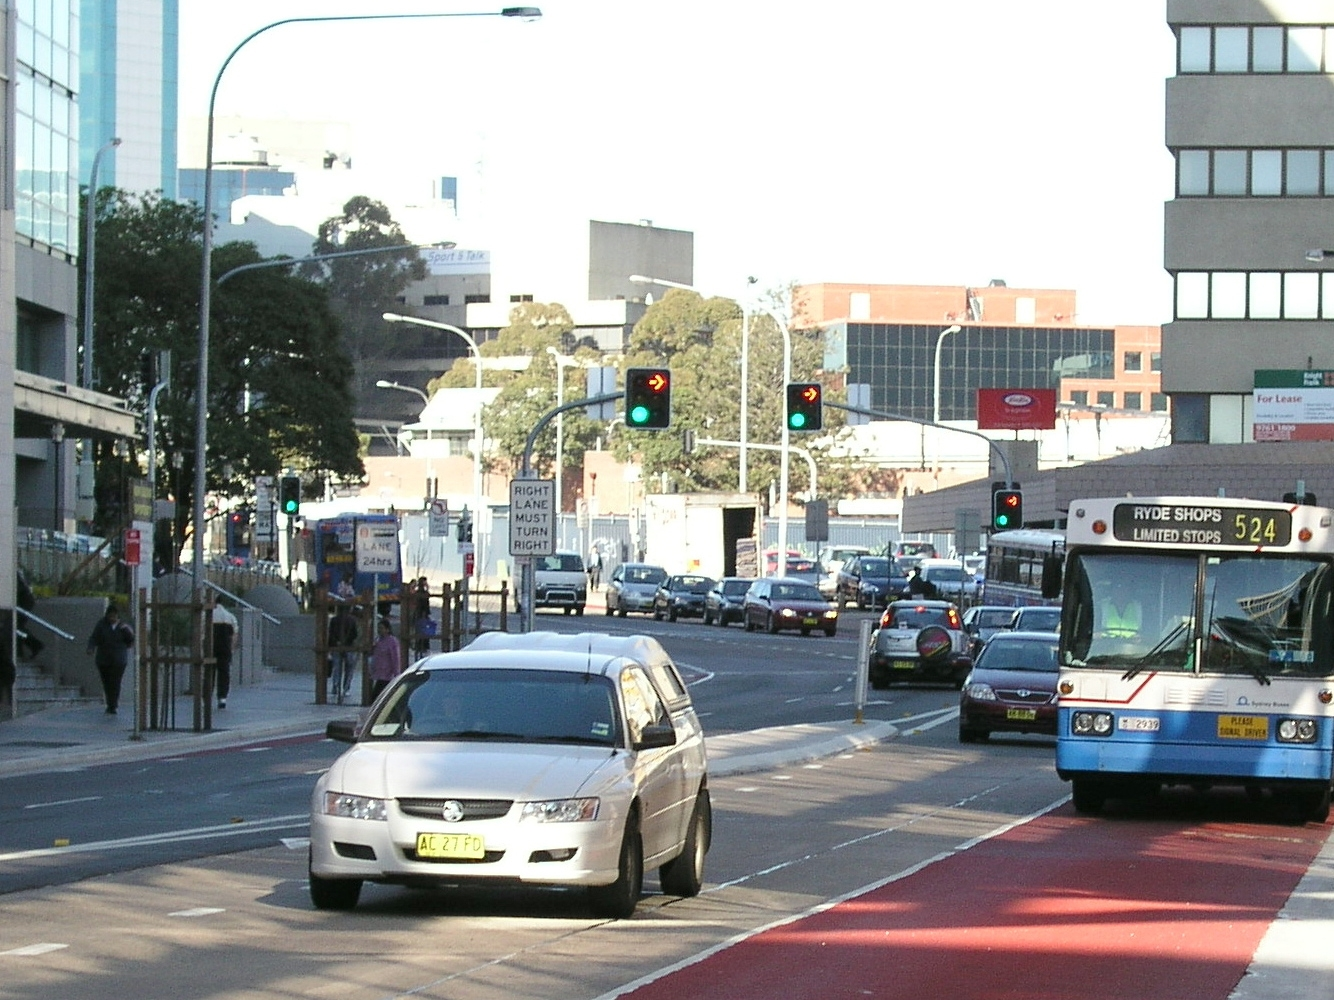 Bus lane in Smith Street, Parramatta